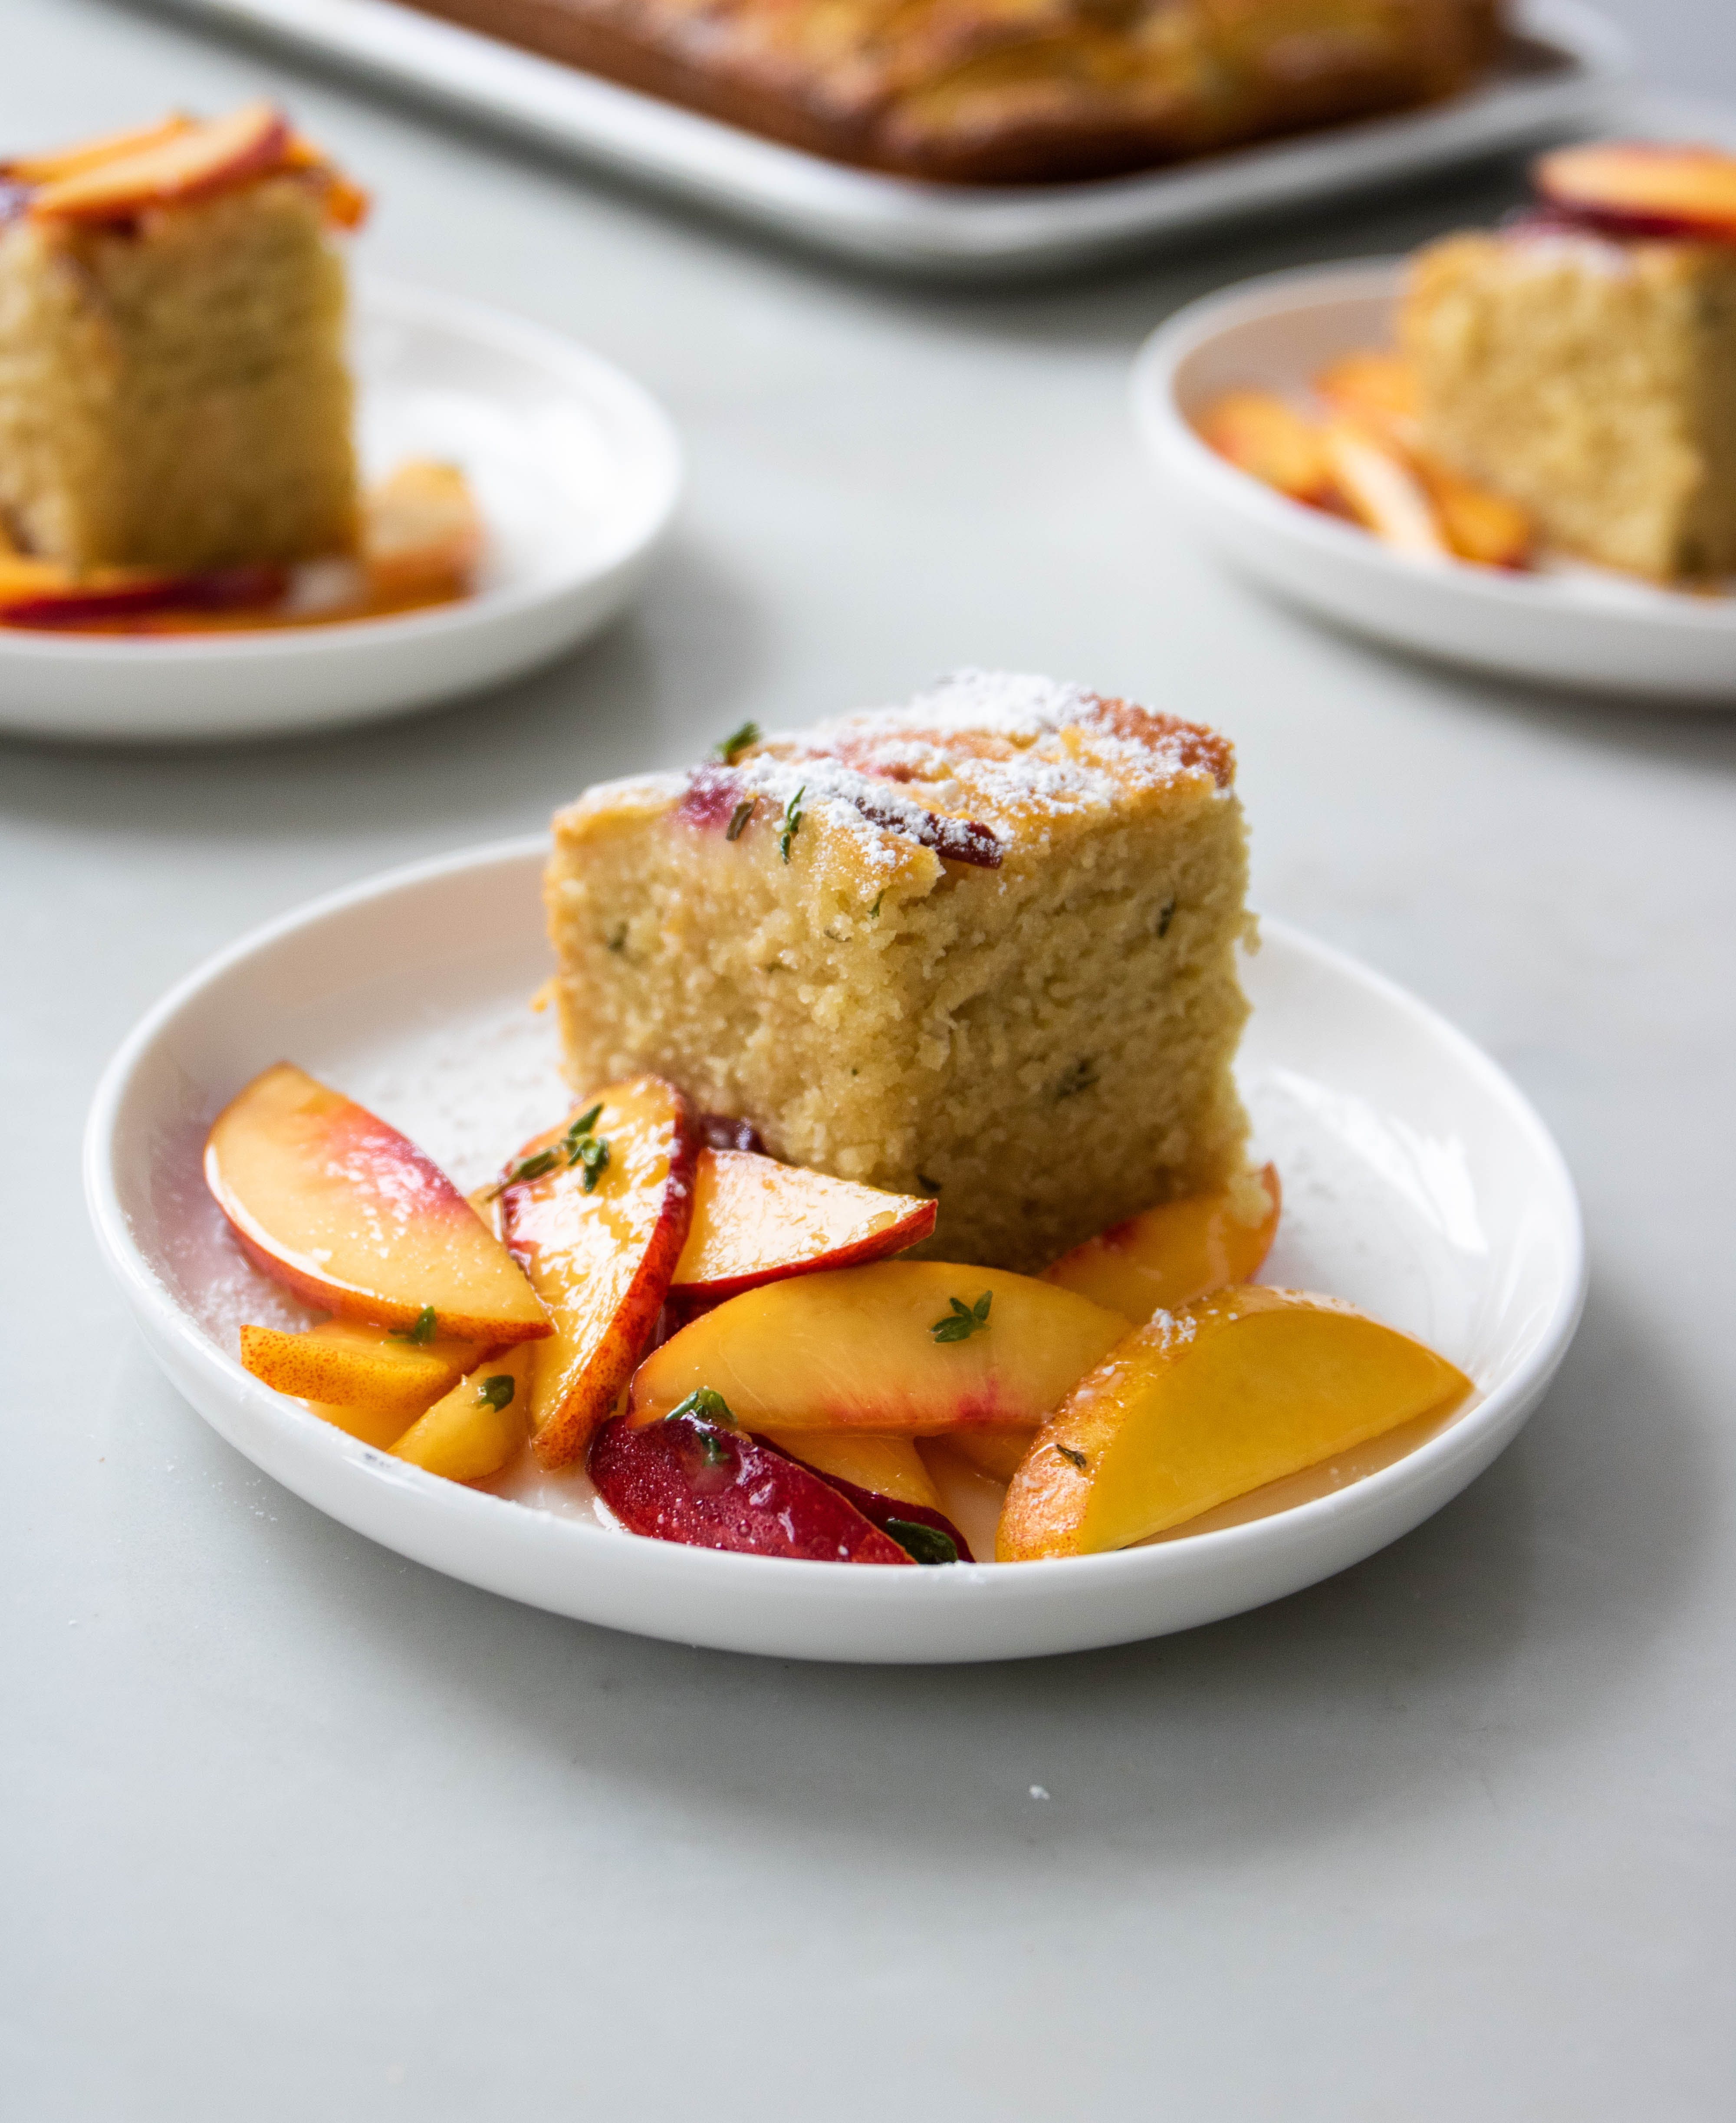 cake with peaches on plate